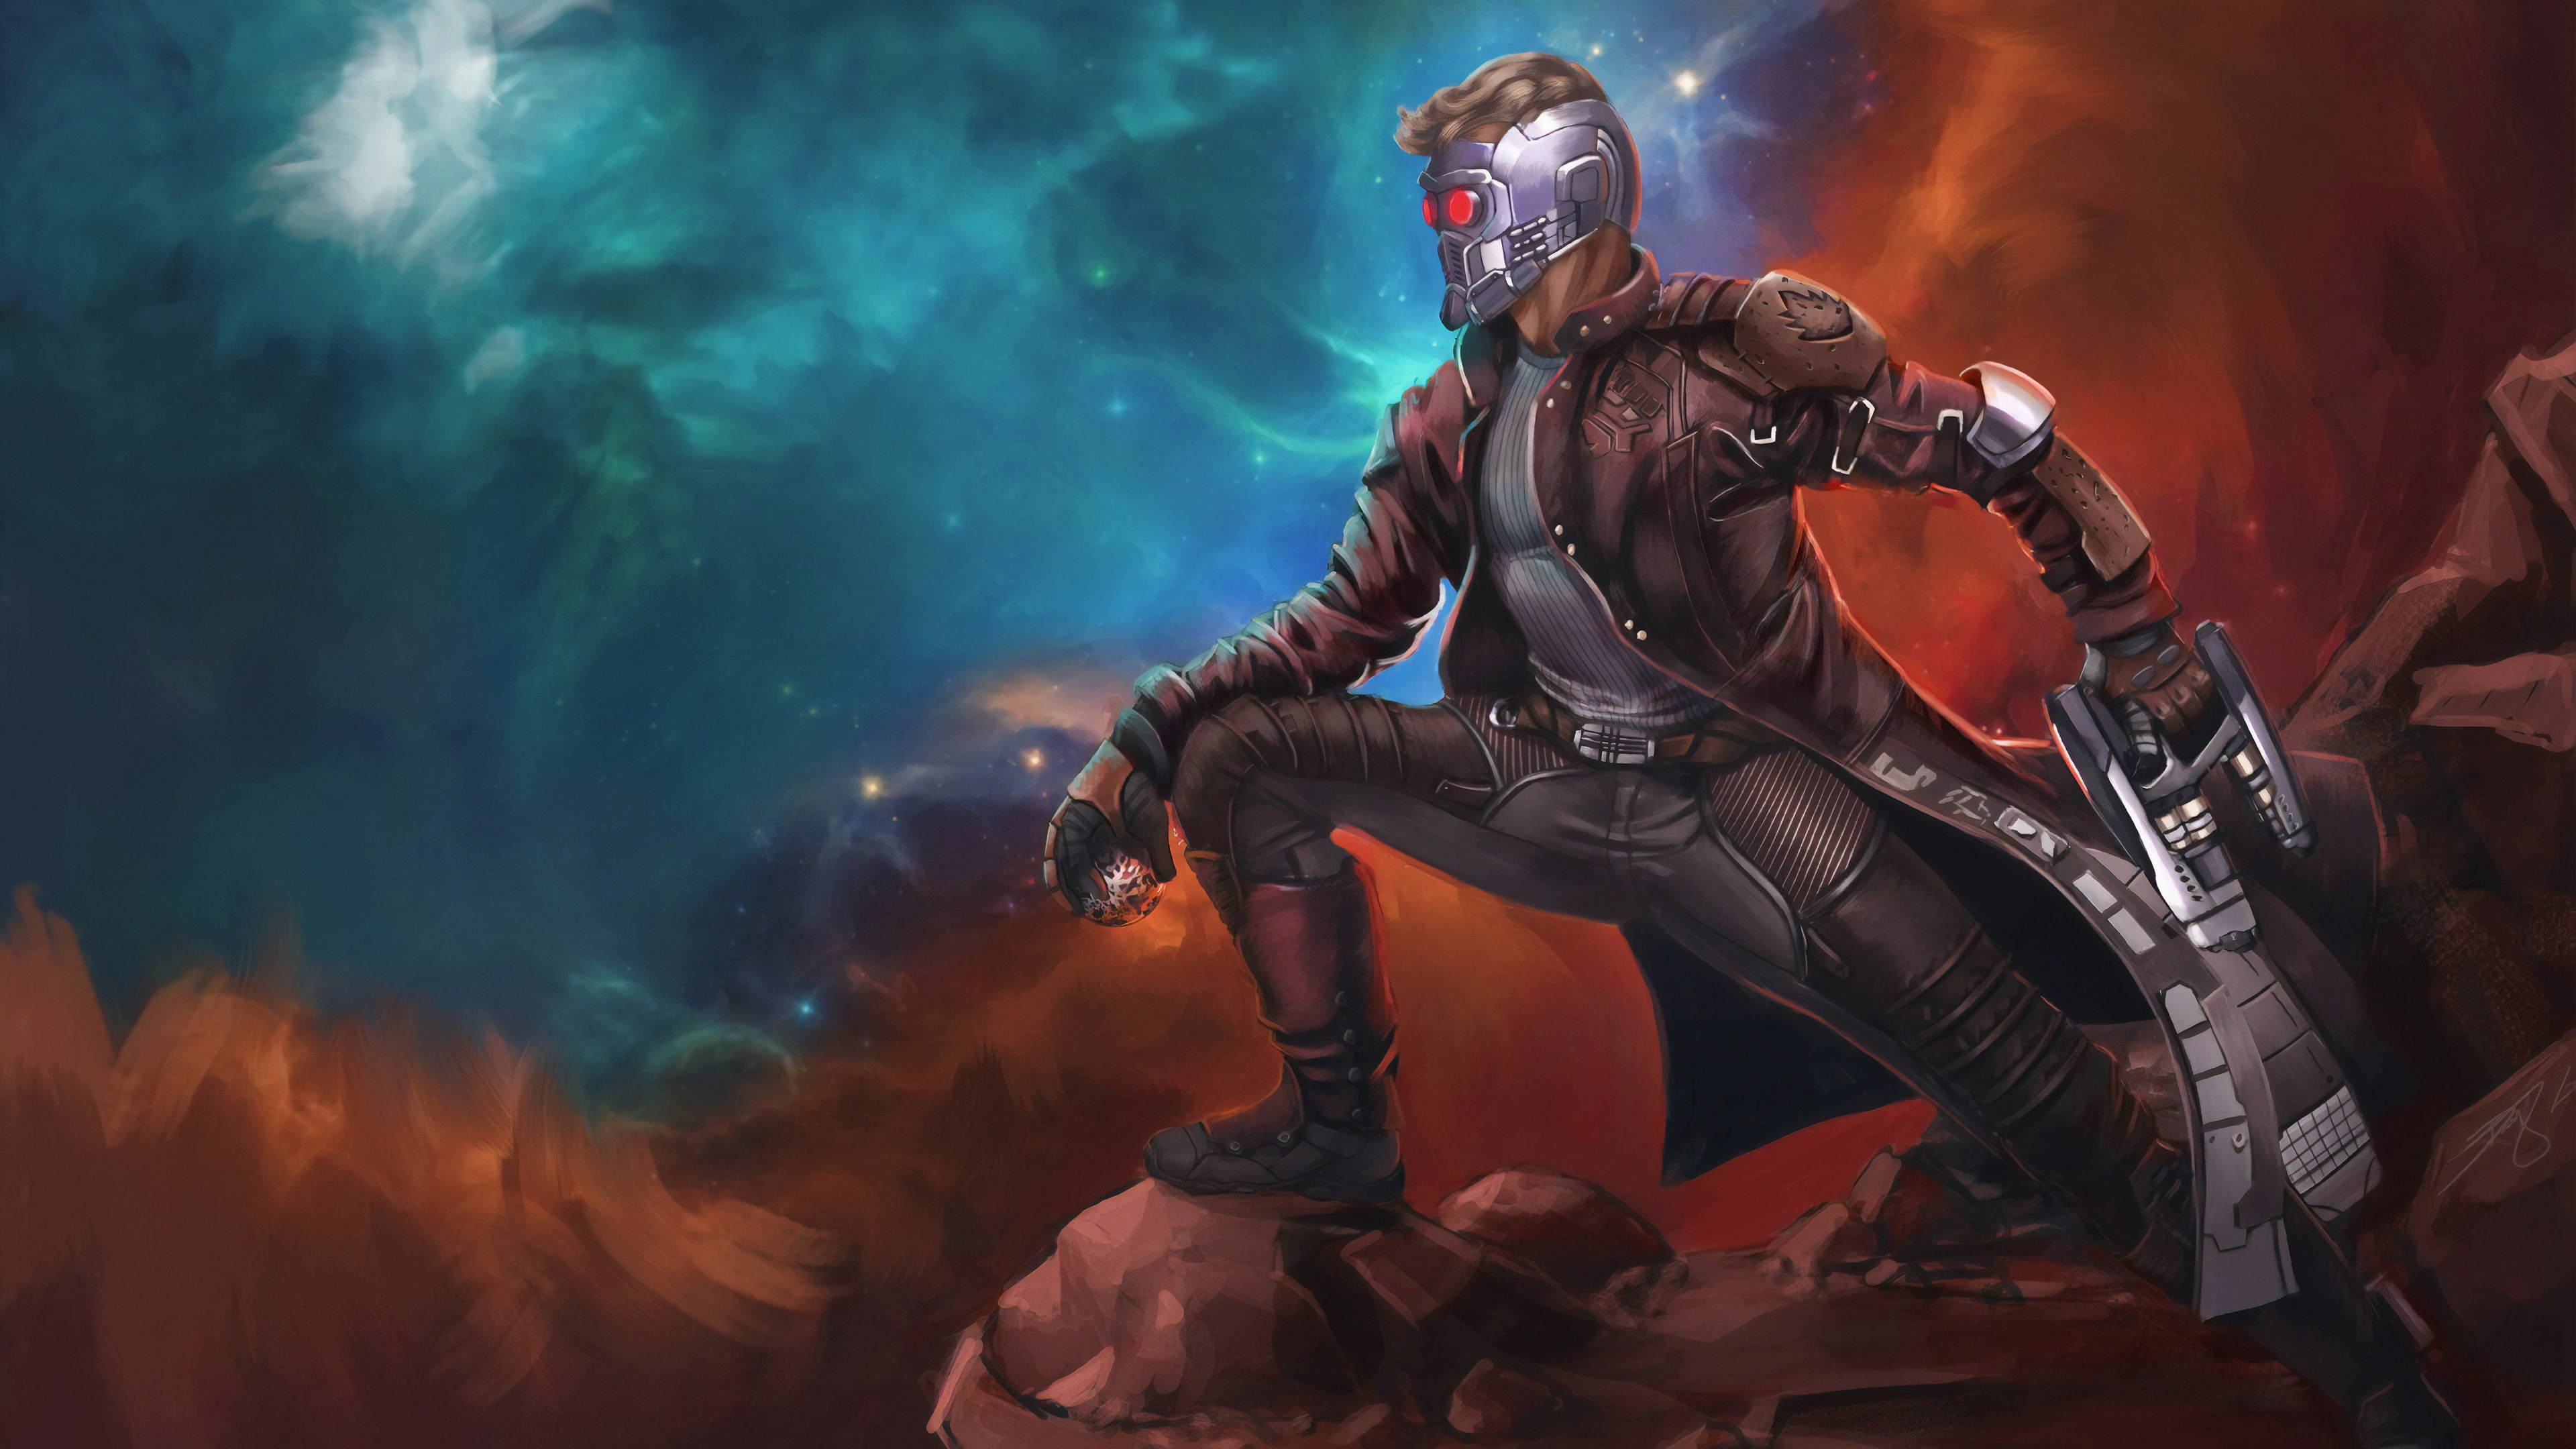 Wallpaper 4k Star Lord Art 4k Wallpapers Artwork Wallpapers